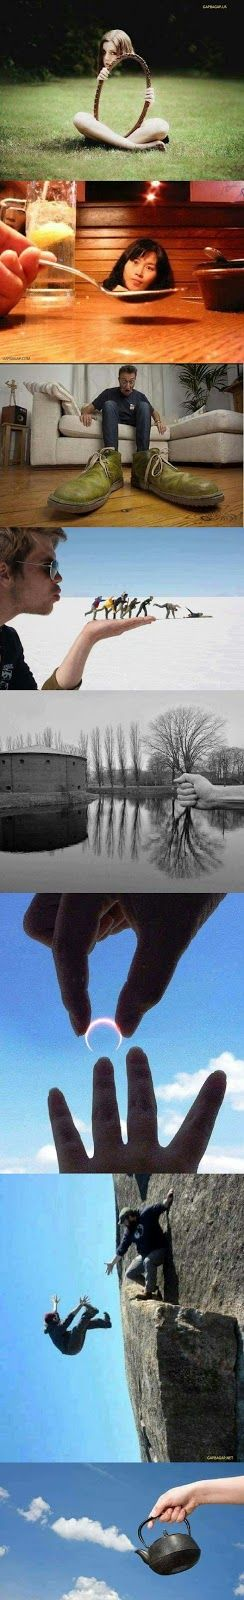 Top 8 Amazing and Mind=Blowing Pictures